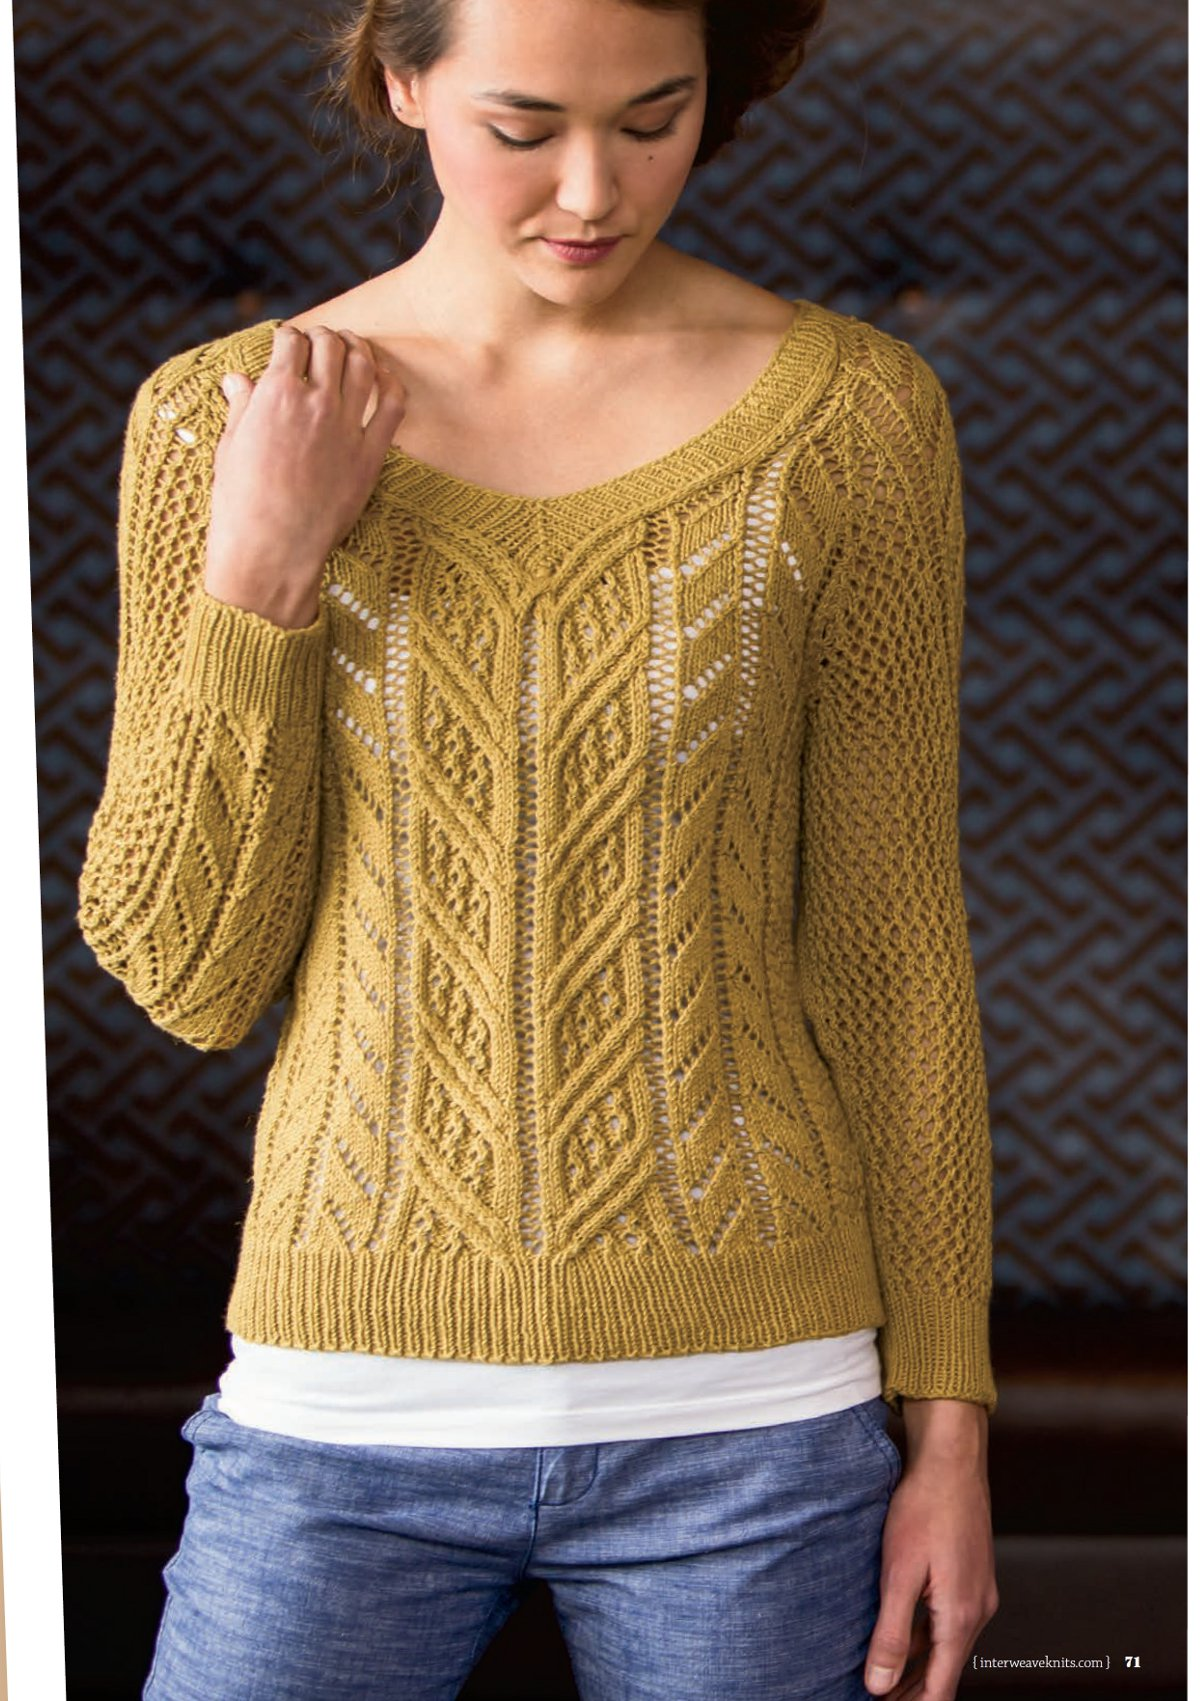 http://vjazhi.ru/images/stories/Interweave_knits/2013/summer/Midsummer.jpg